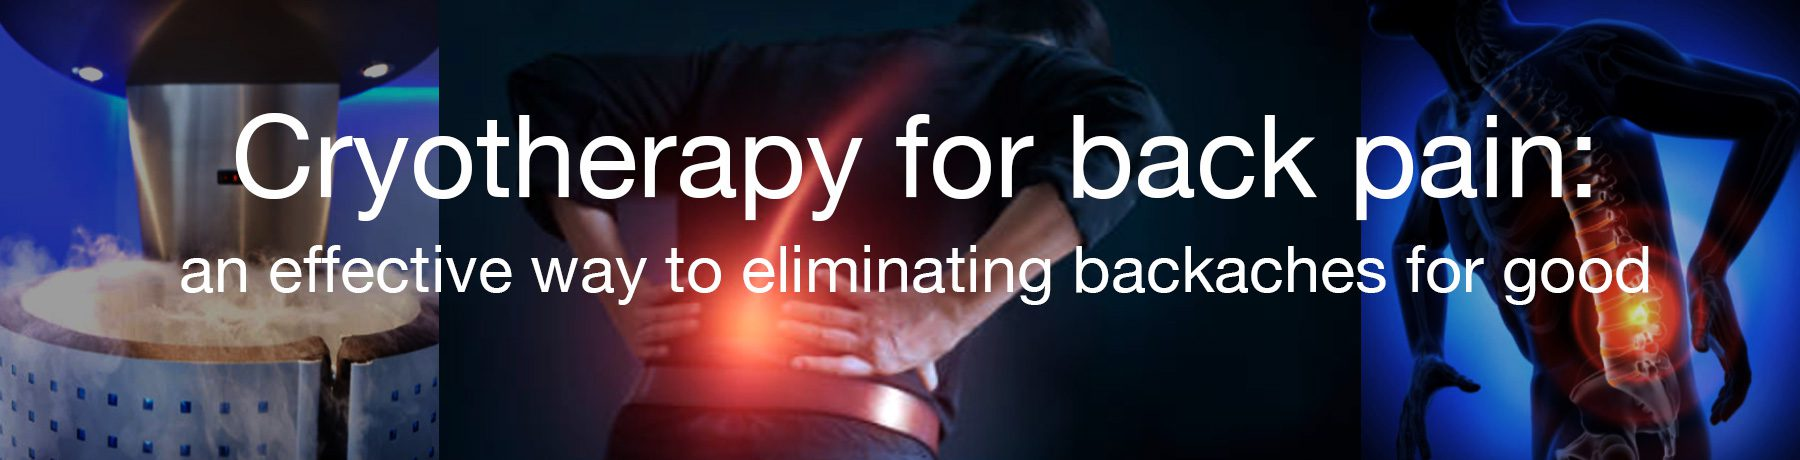 cryotherapy for back pain